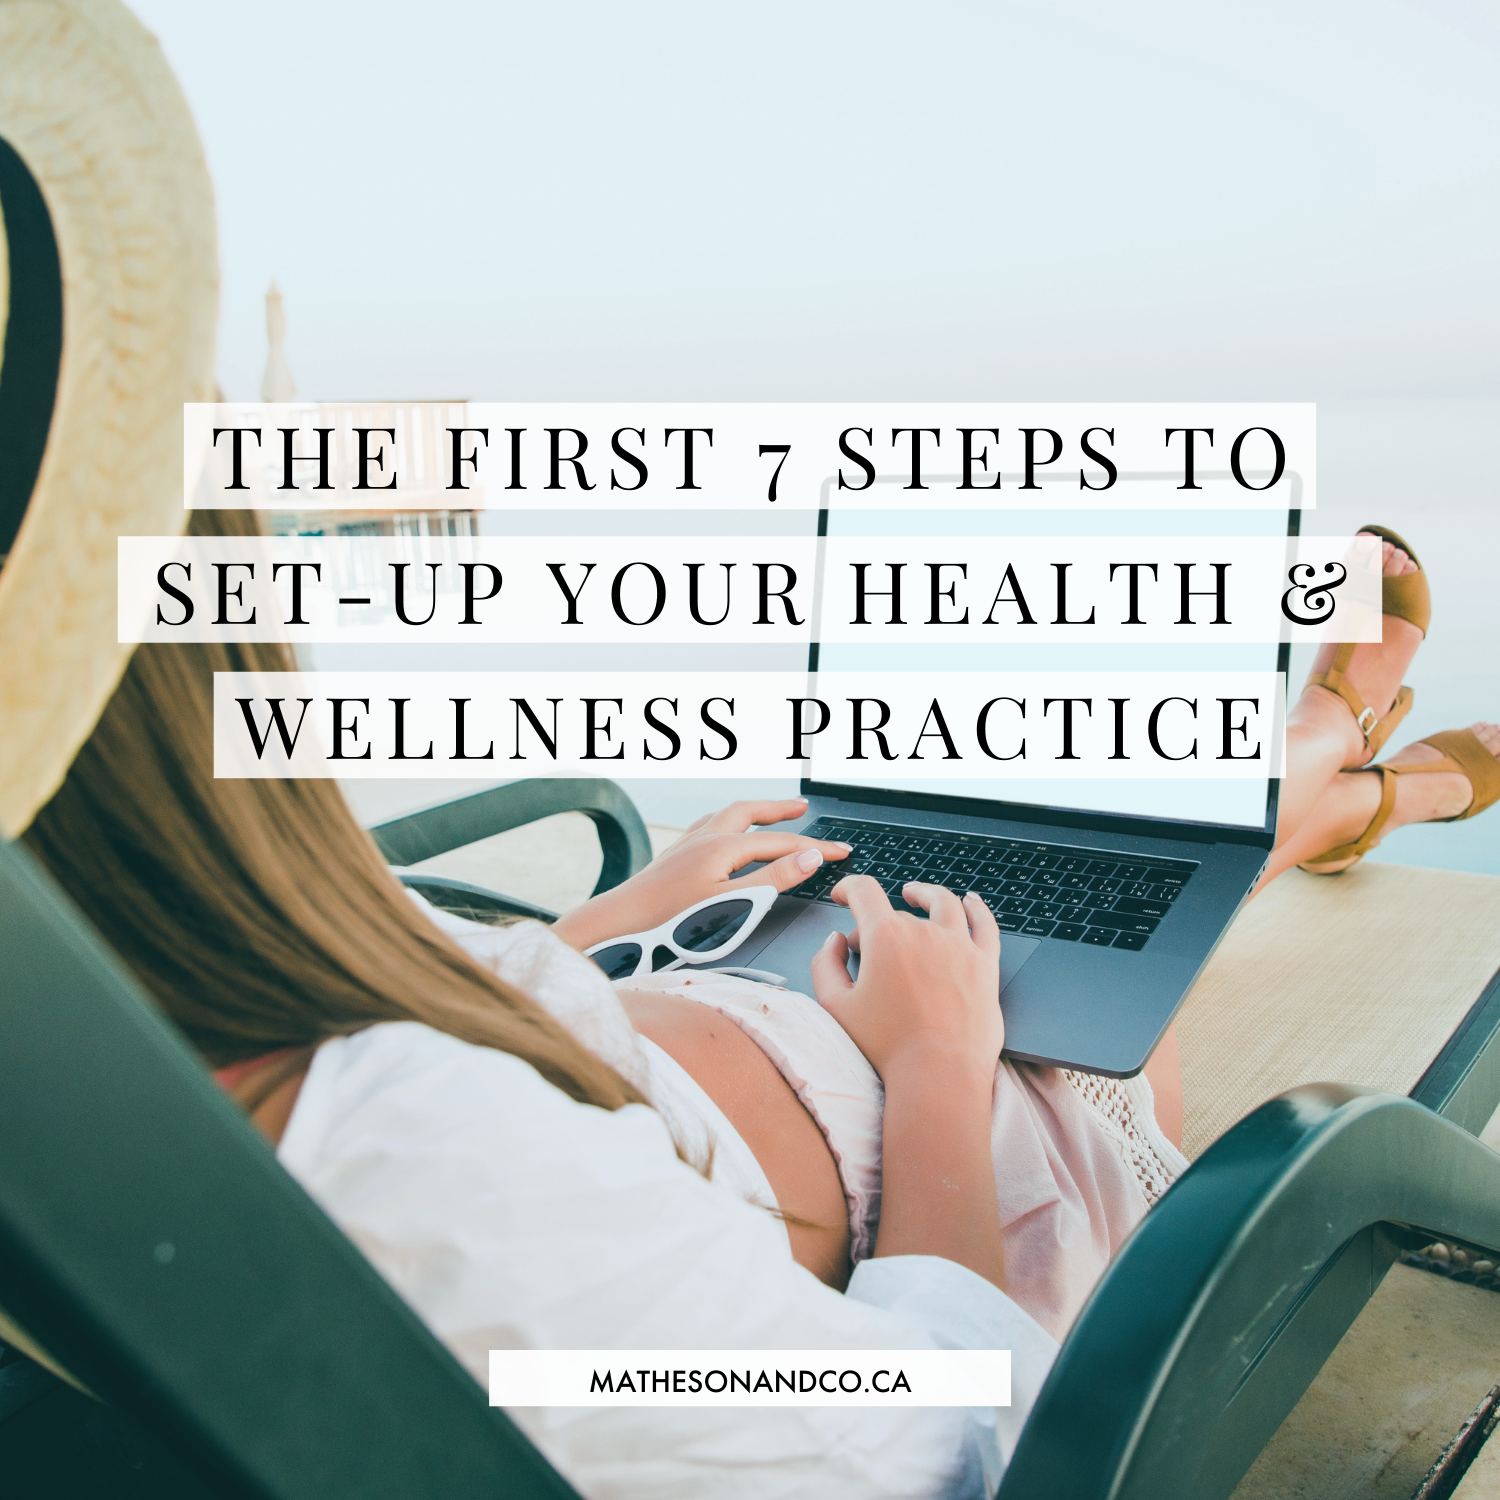 The First 7 Steps to Set-up Your Health and Wellness Practice